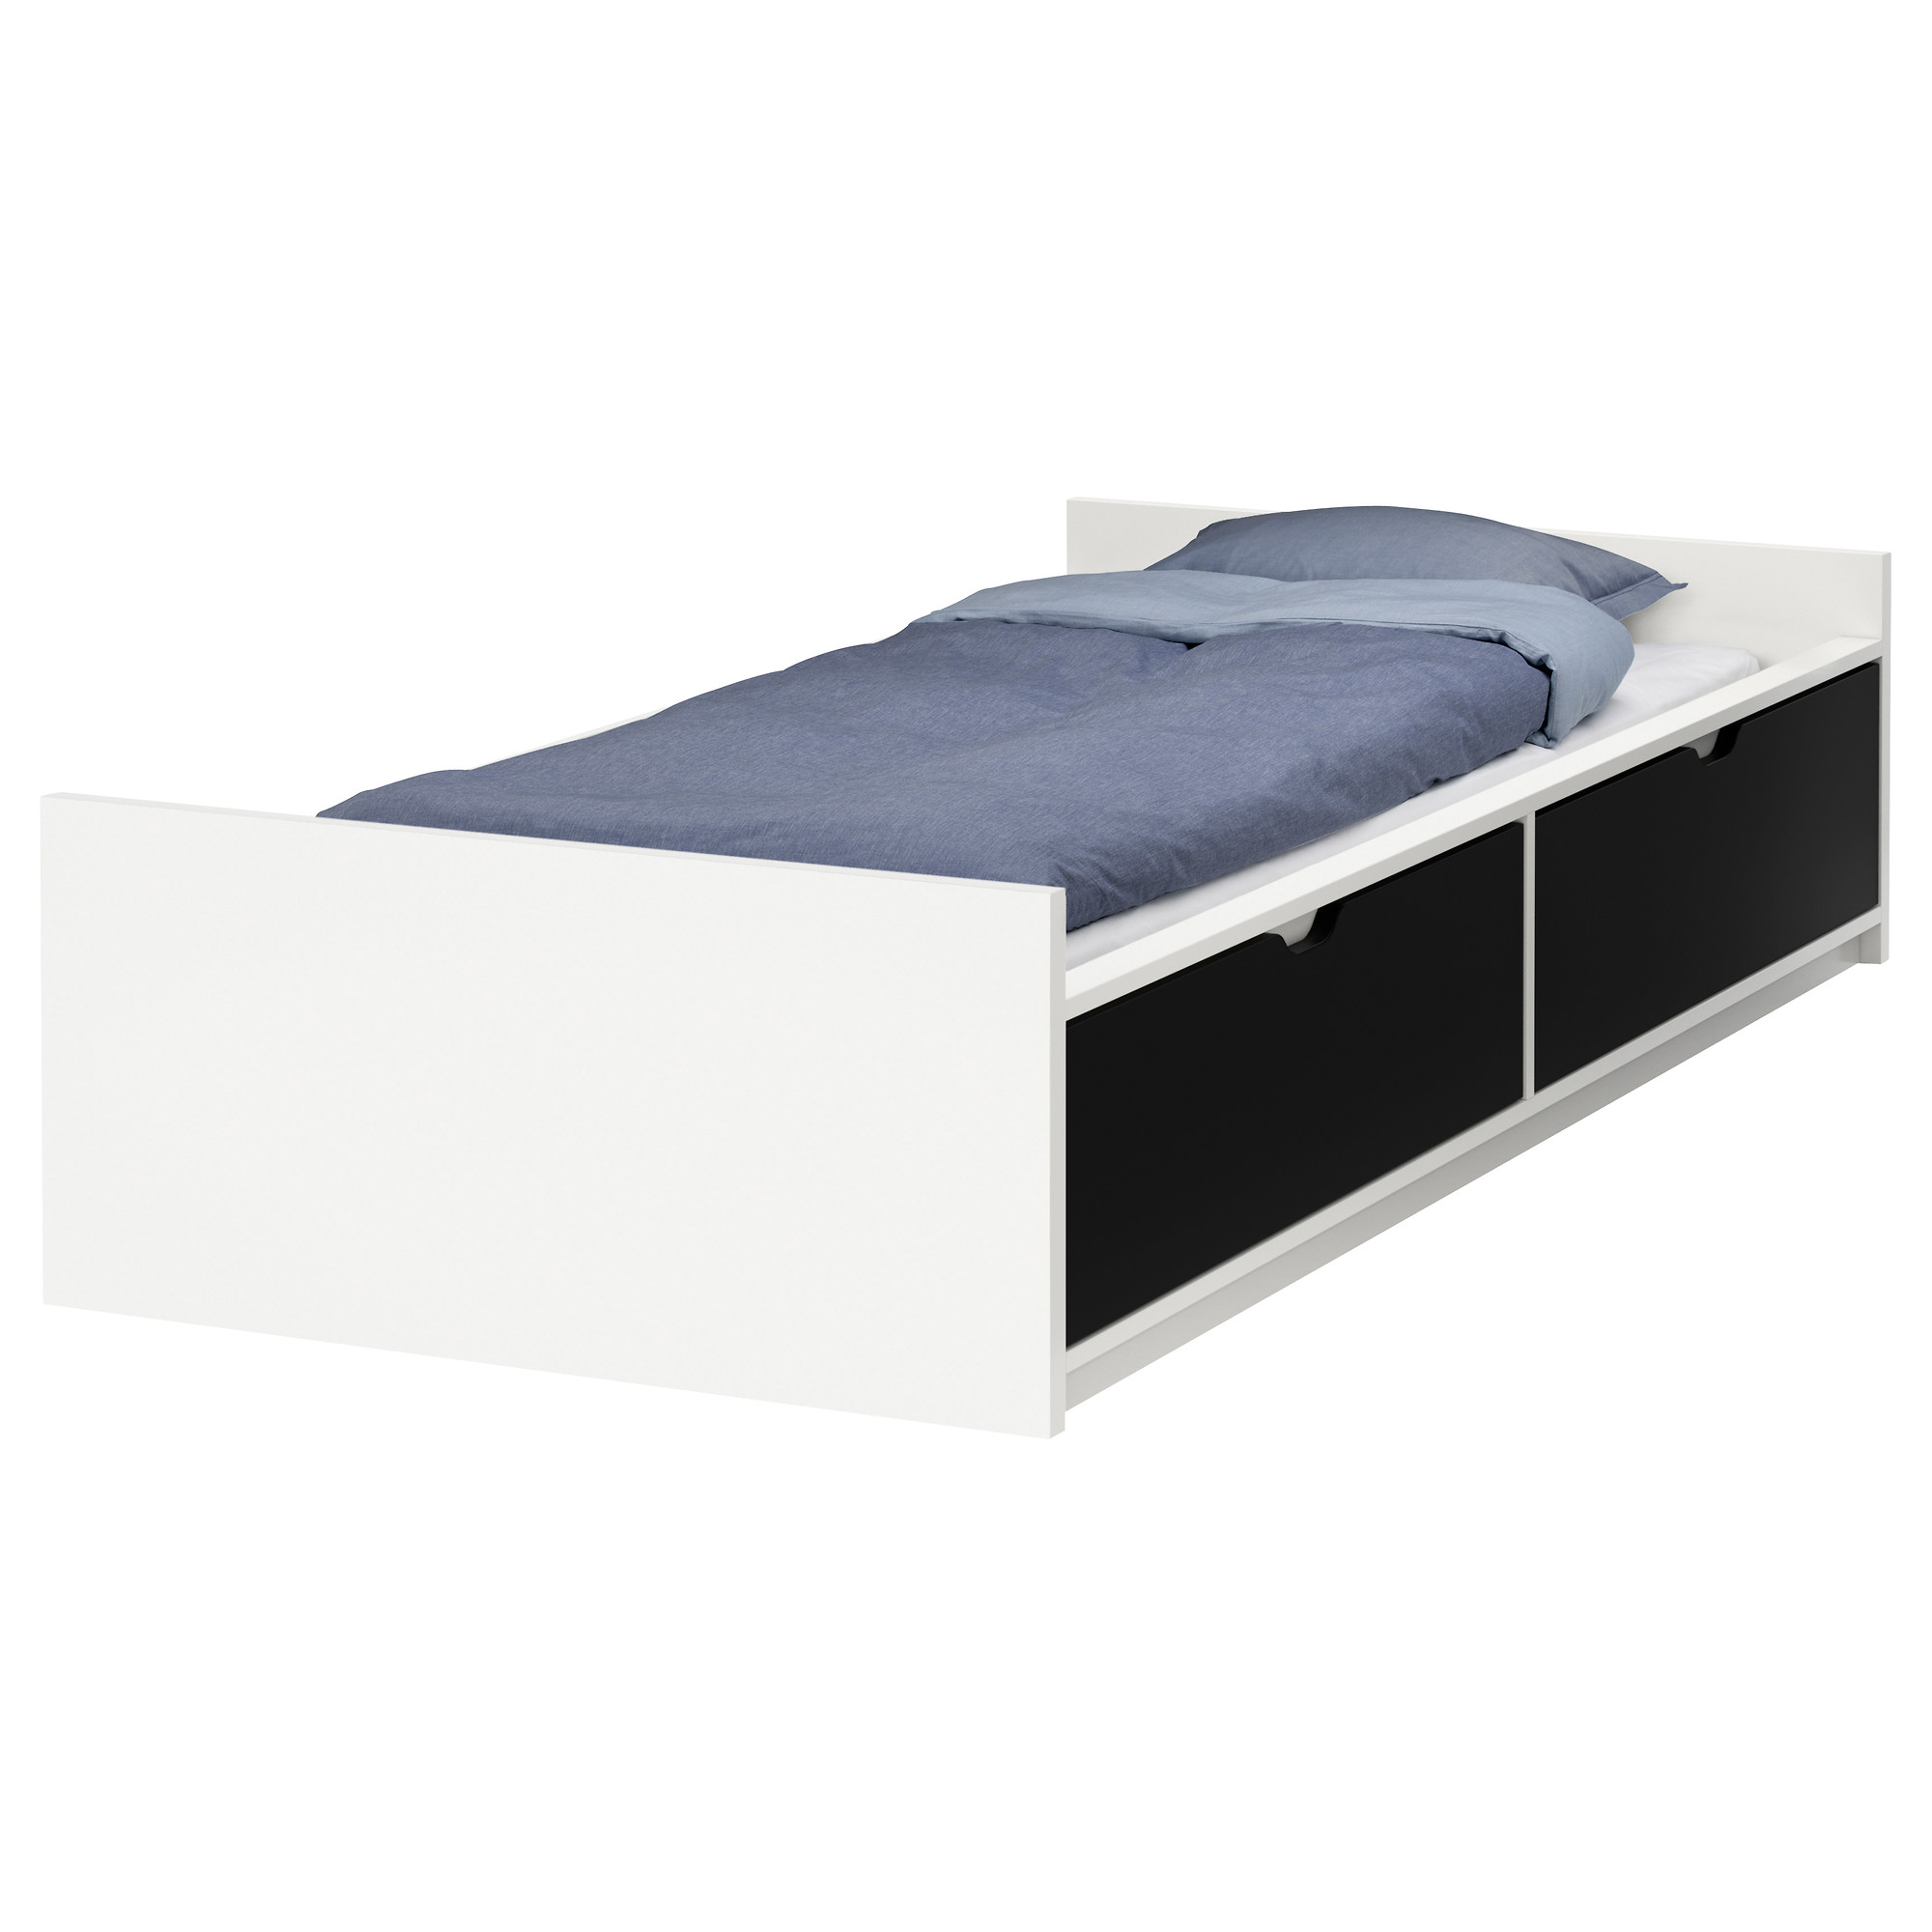 Wonderful twin xl bed frame ikea homesfeed for Platform bed with drawers ikea